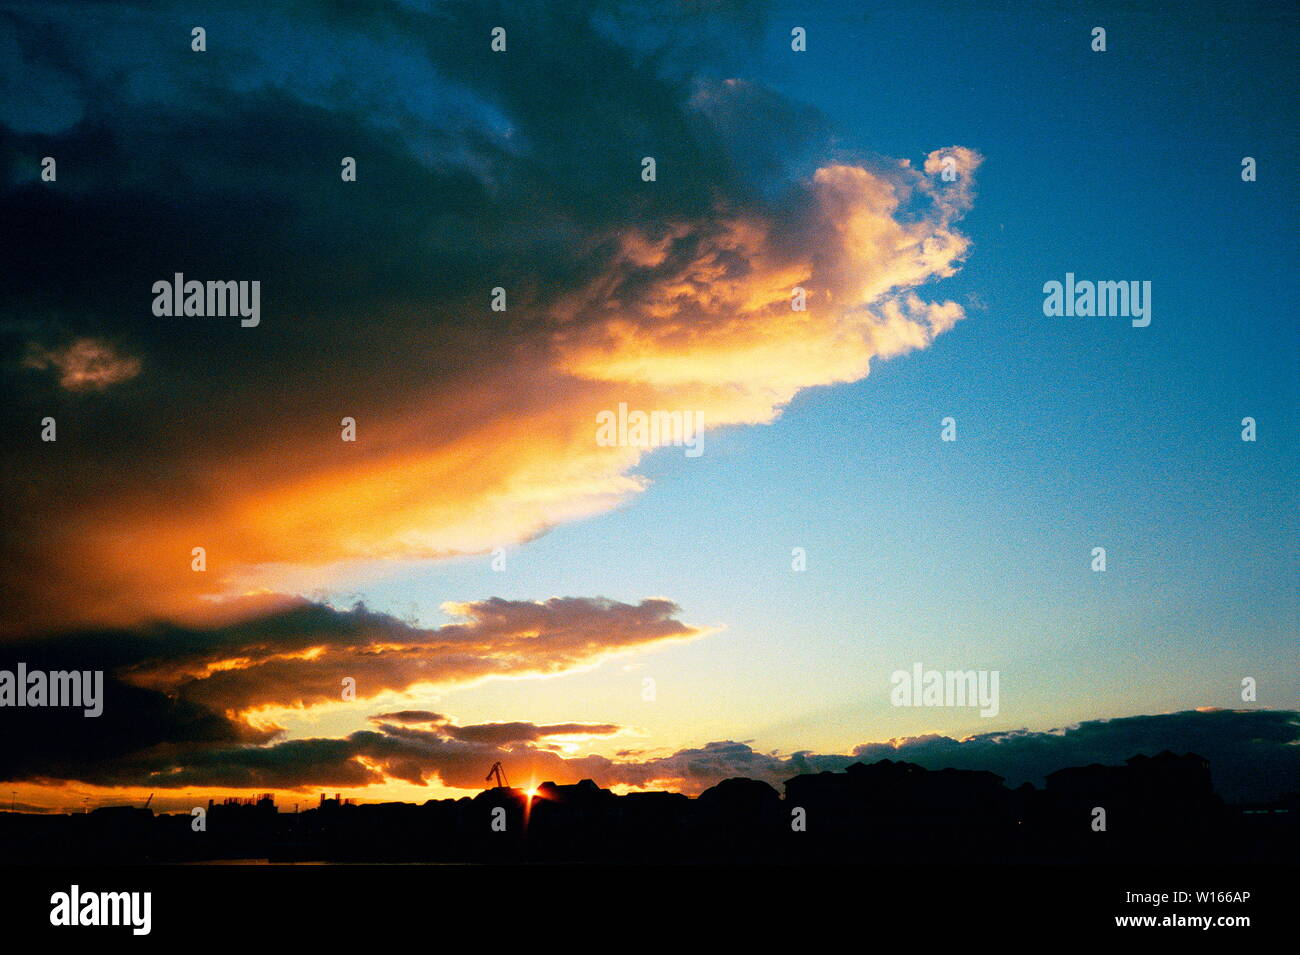 AJAXNETPHOTO. 2005. SOUTHAMPTON, ENGLAND. SUN SETS OVER THE CITY AS A BANK OF STRATUS CLOUDS HERALD AN APPROACHING FRONT.PHOTO;JONATHAN EASTLAND/AJAX REF;544160 3 22 Stock Photo